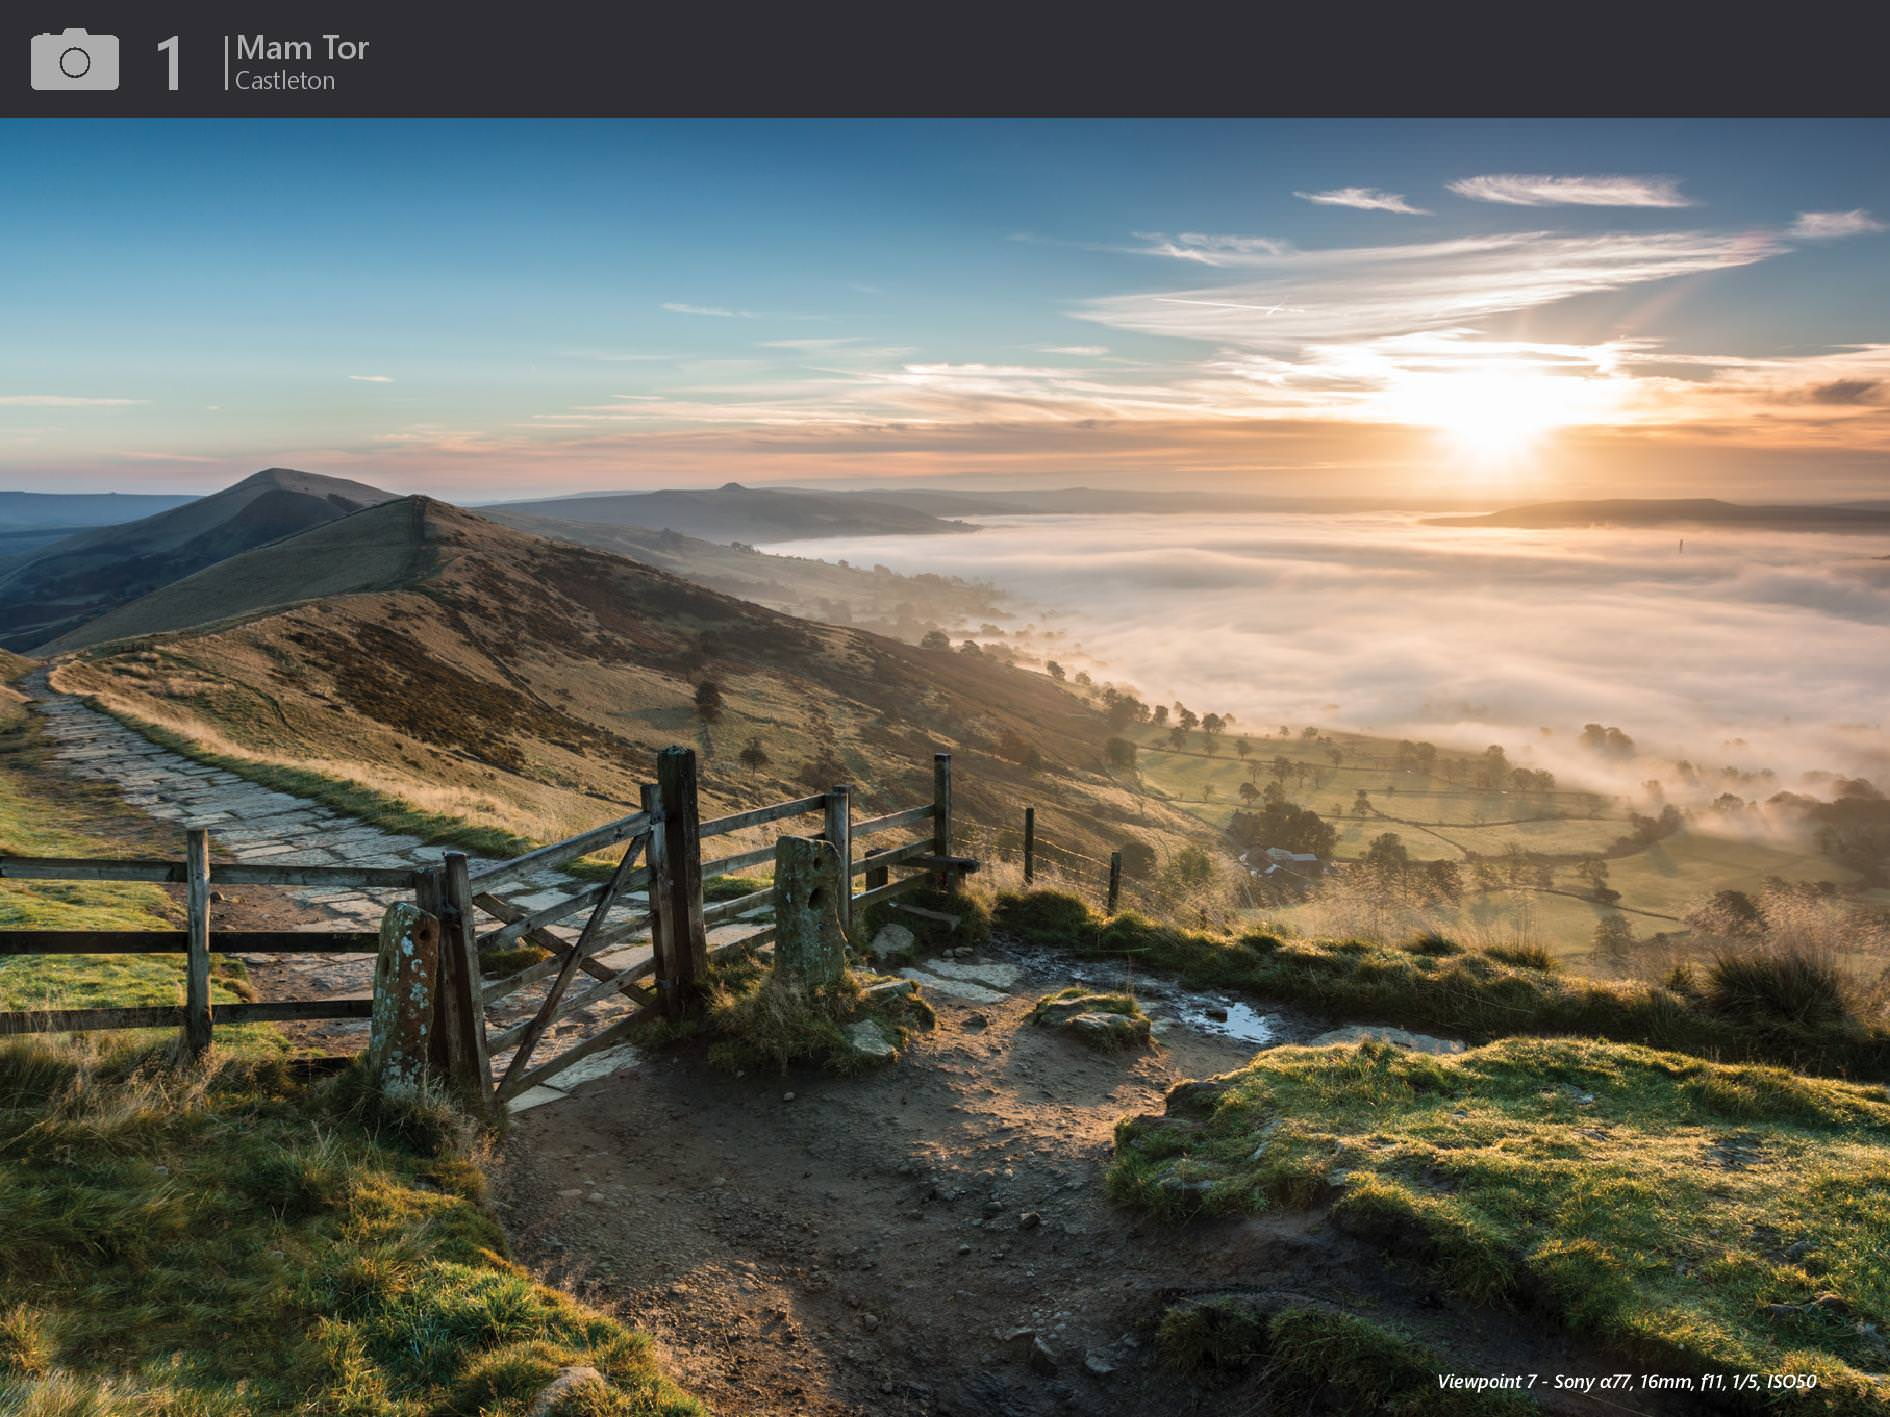 Peak District Through The Lens Mam Tor Introduction